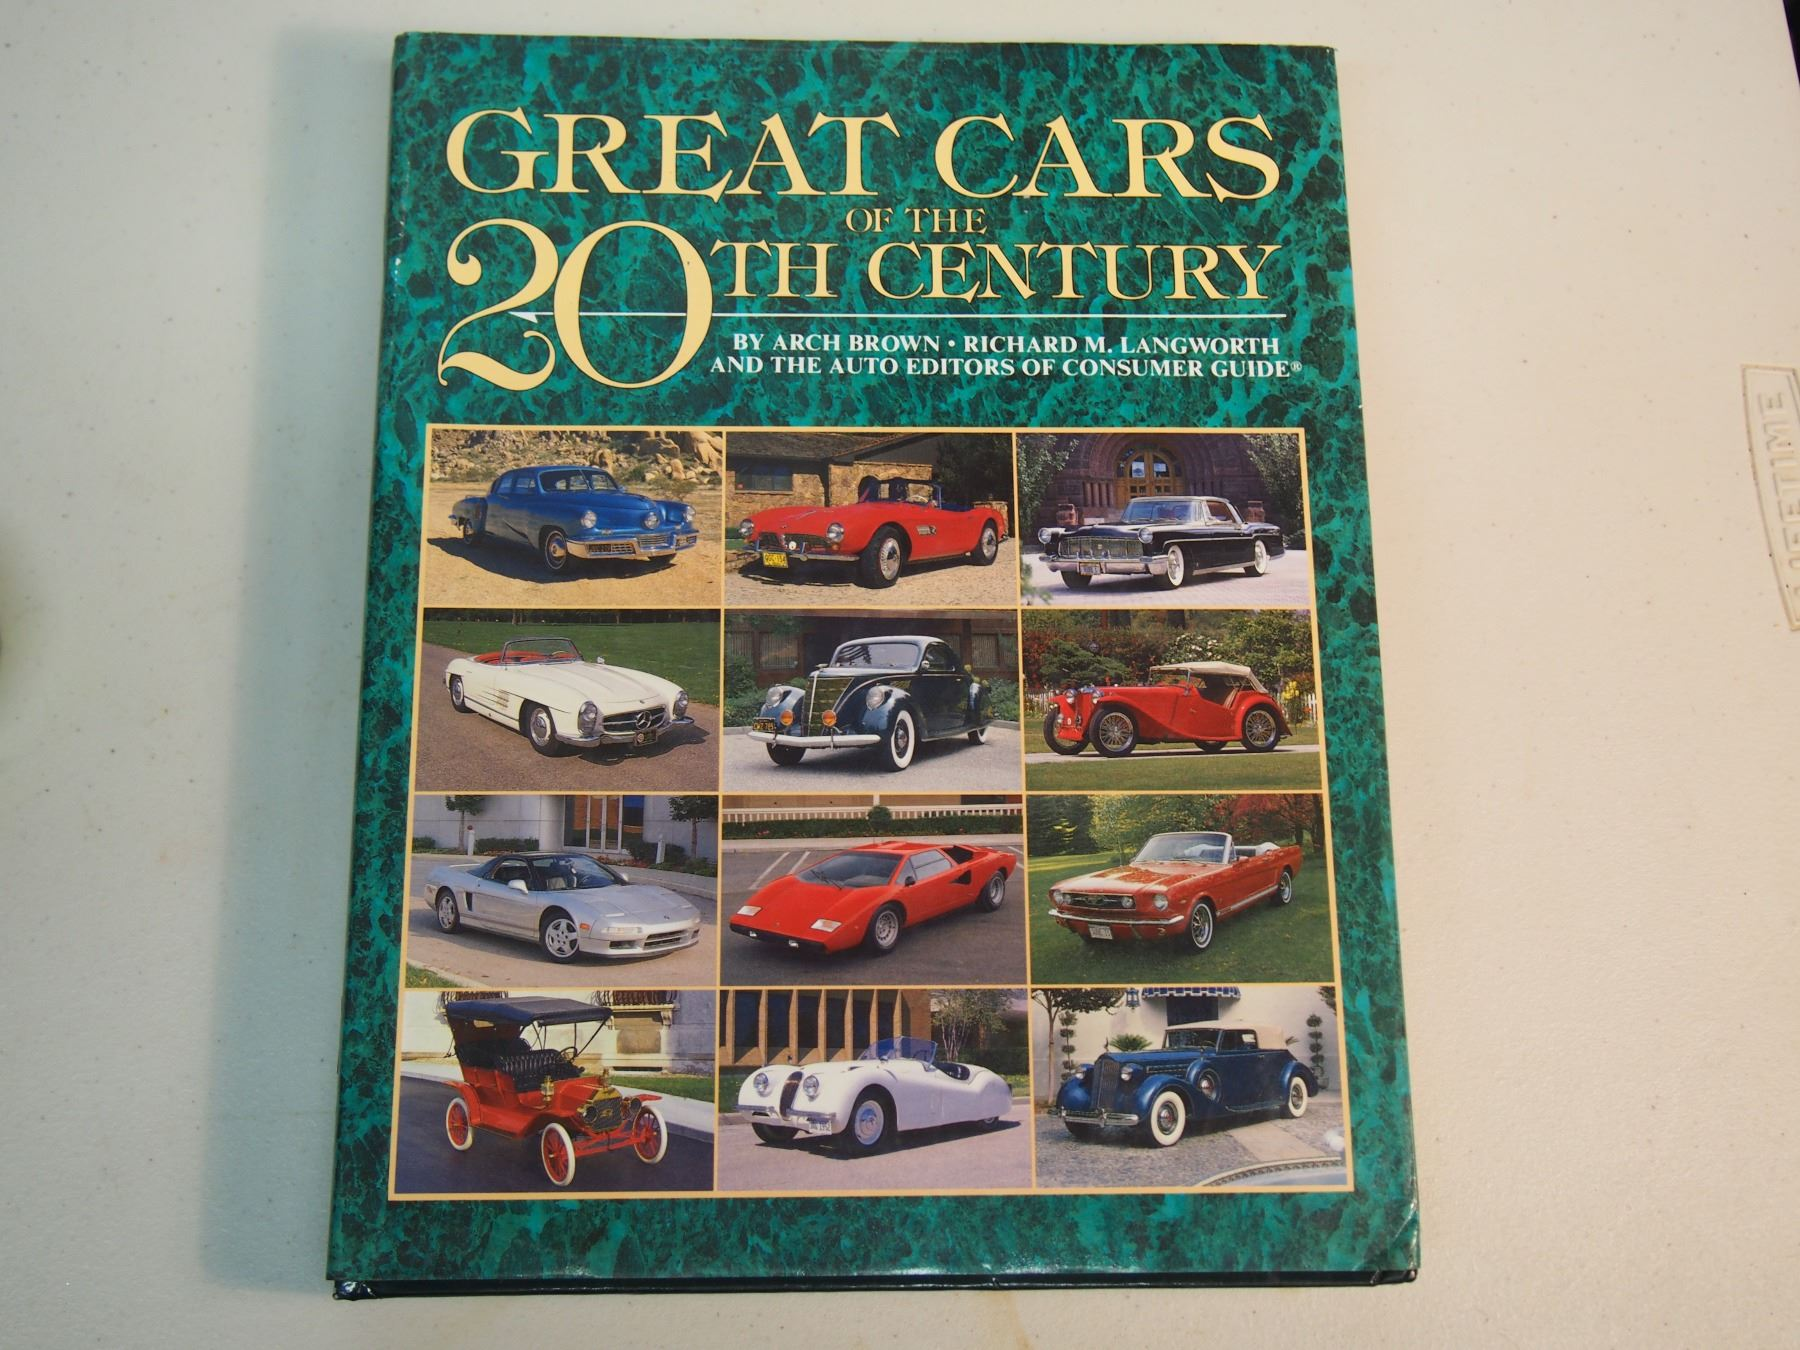 Great Cars Of The 20th Century book, 414 Pages